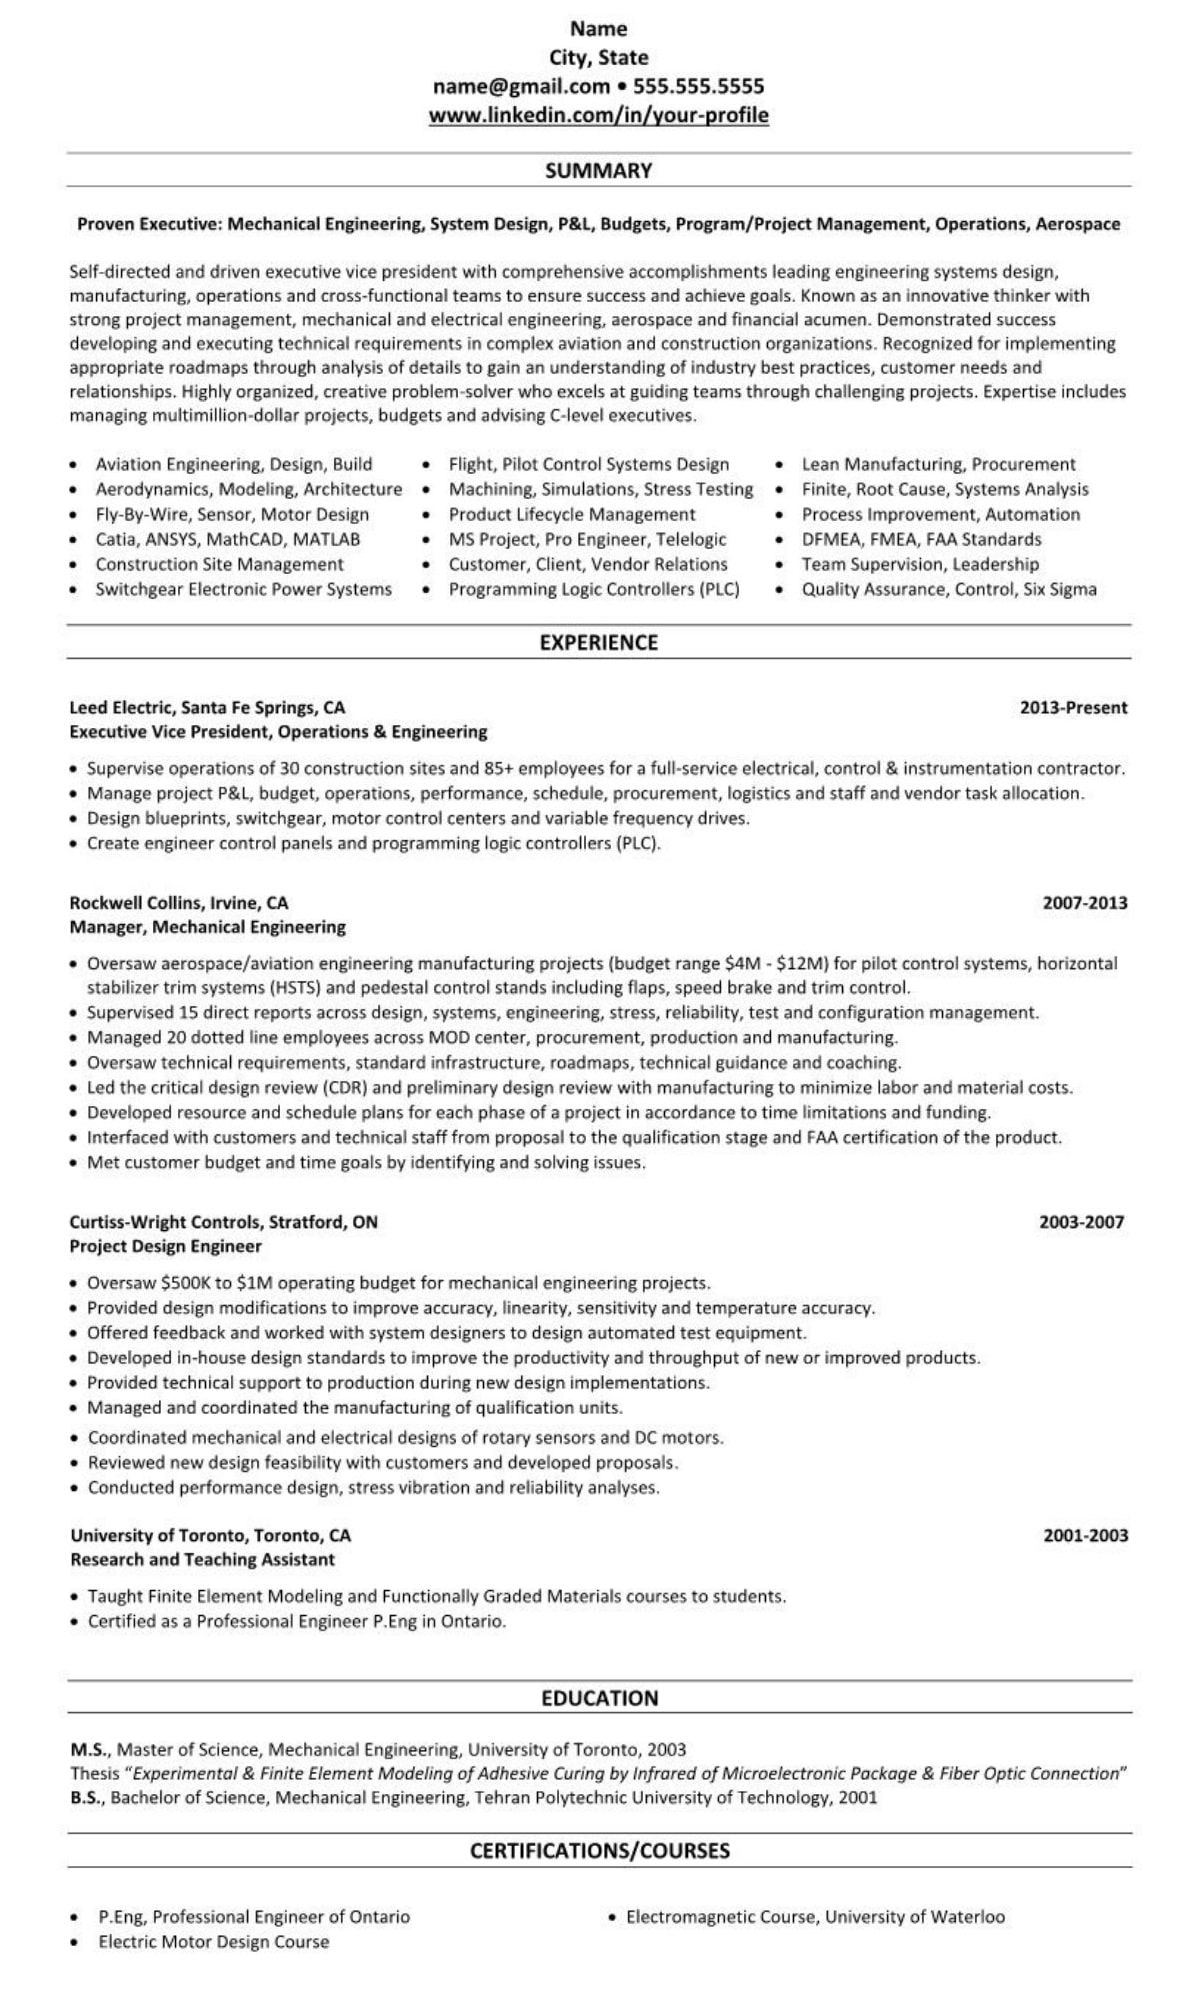 professional executive resume example mechanical engineering 2341